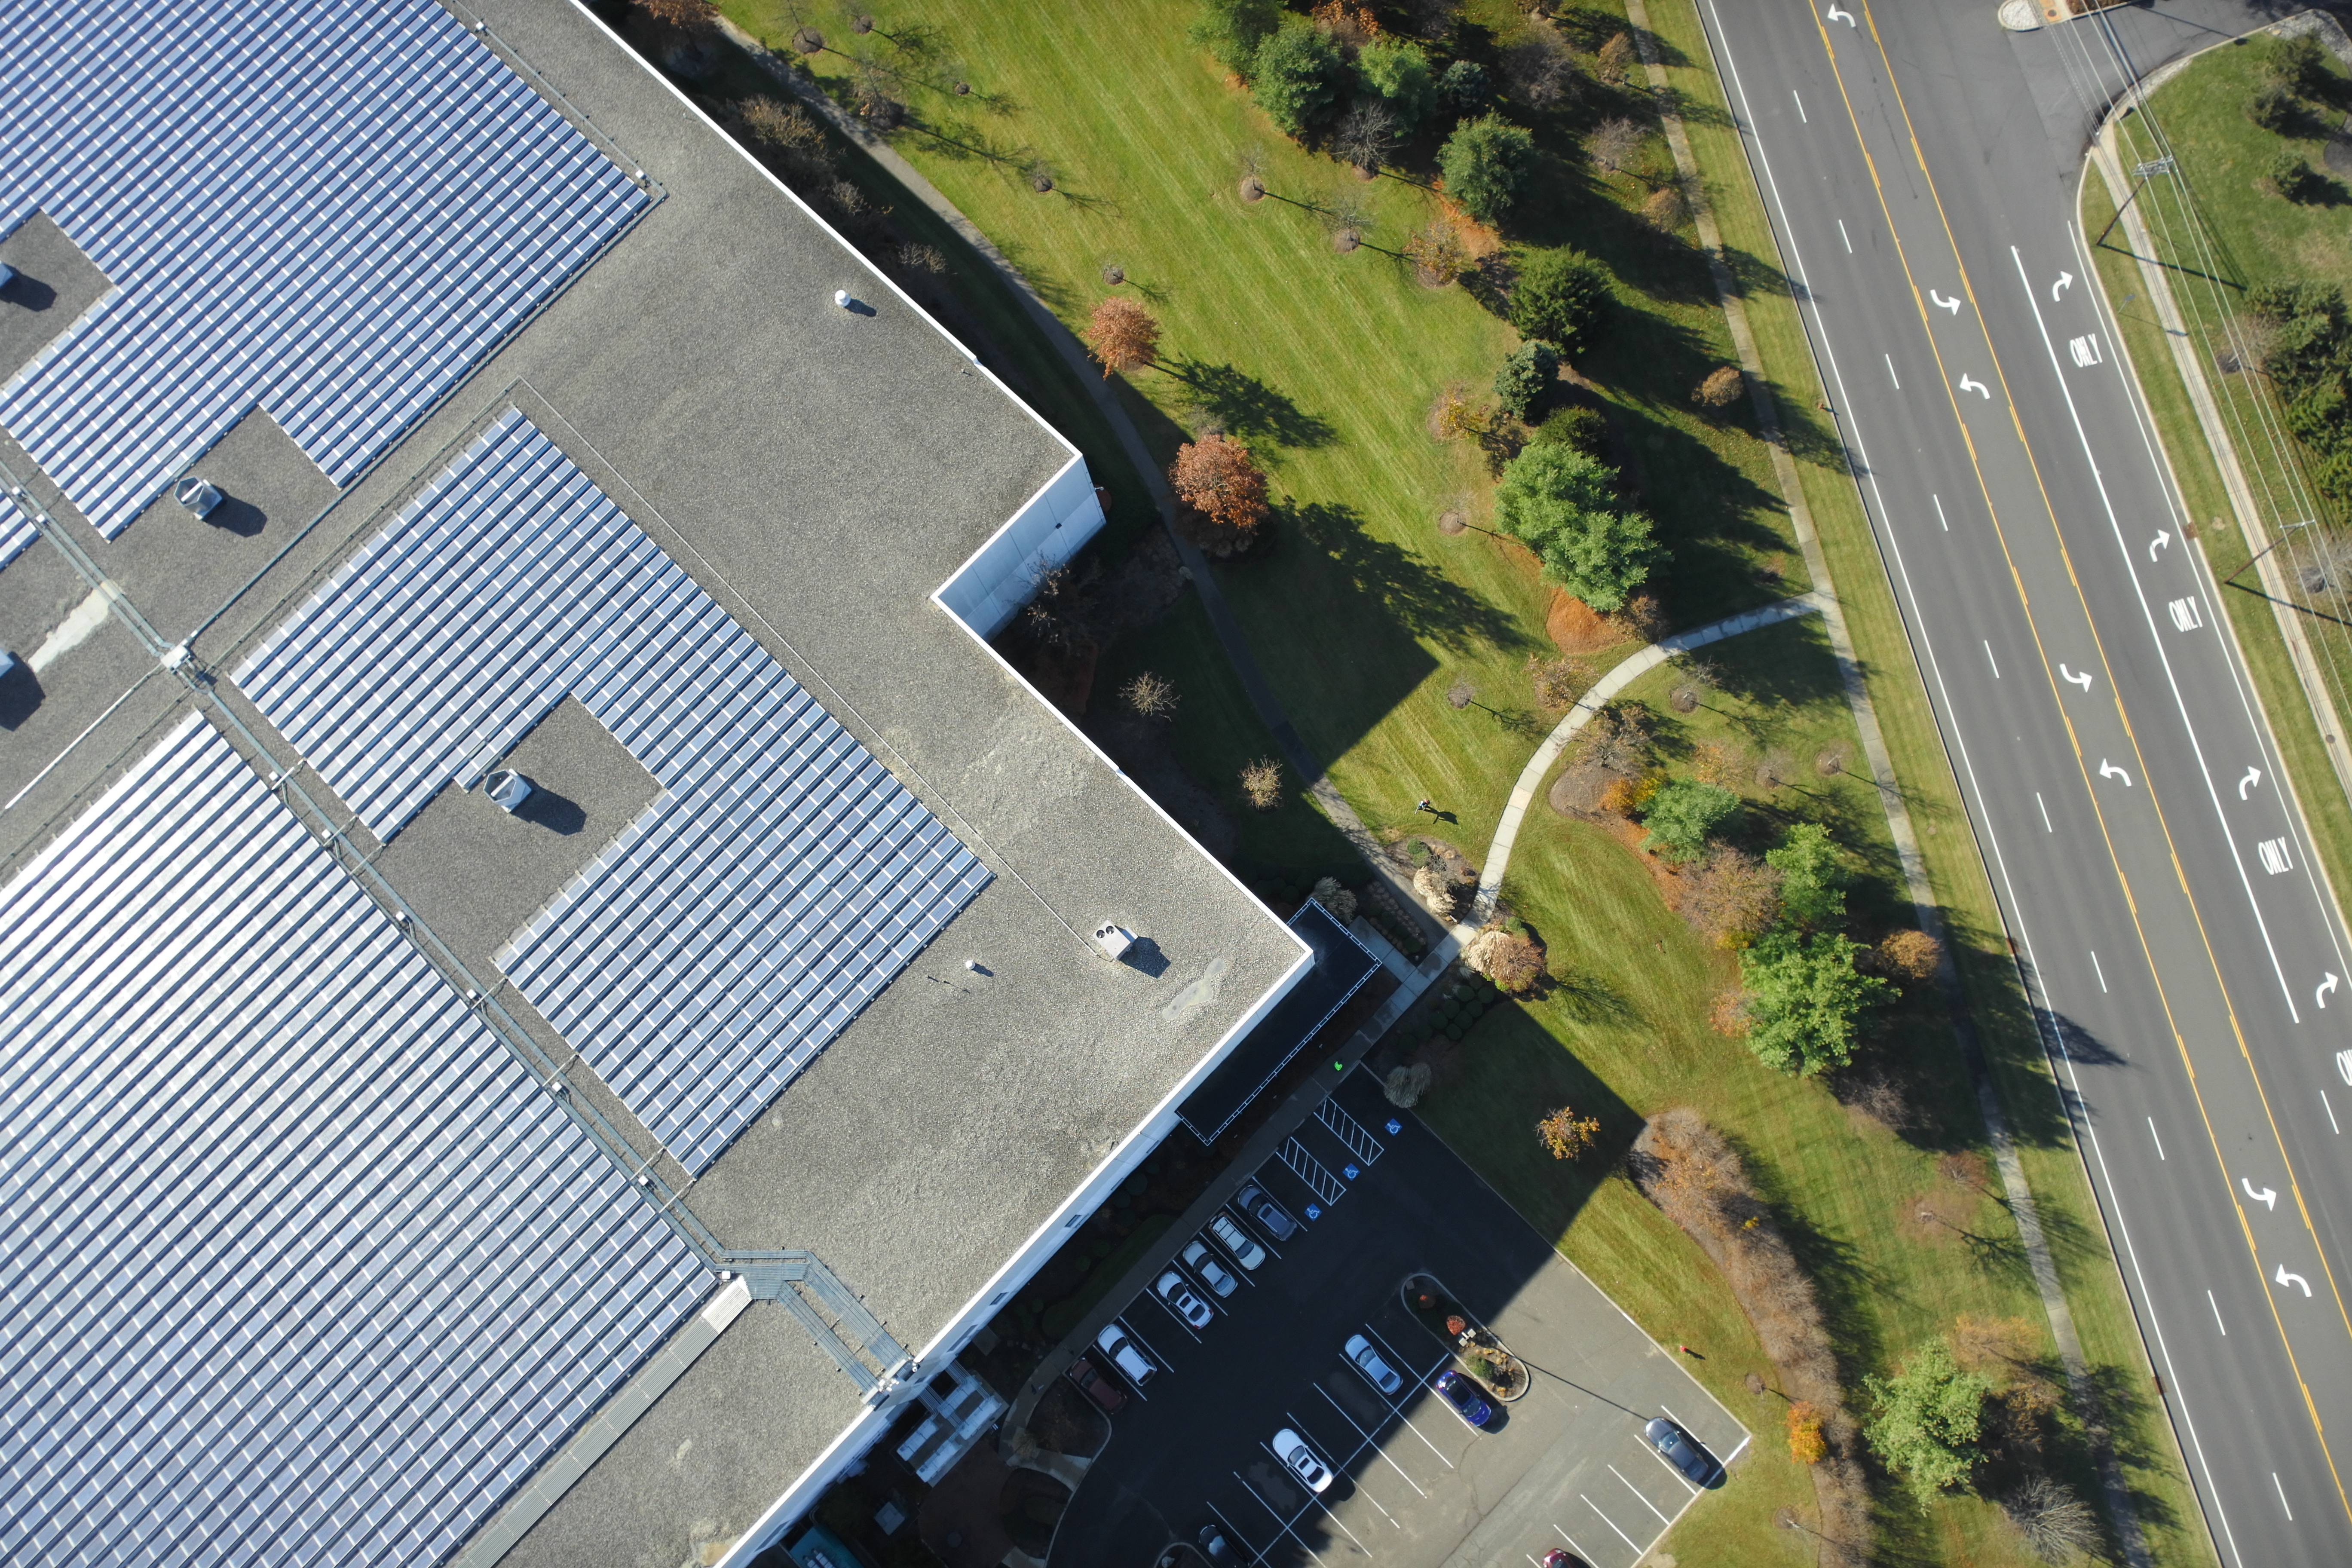 Solar Roof Inspection by Drone